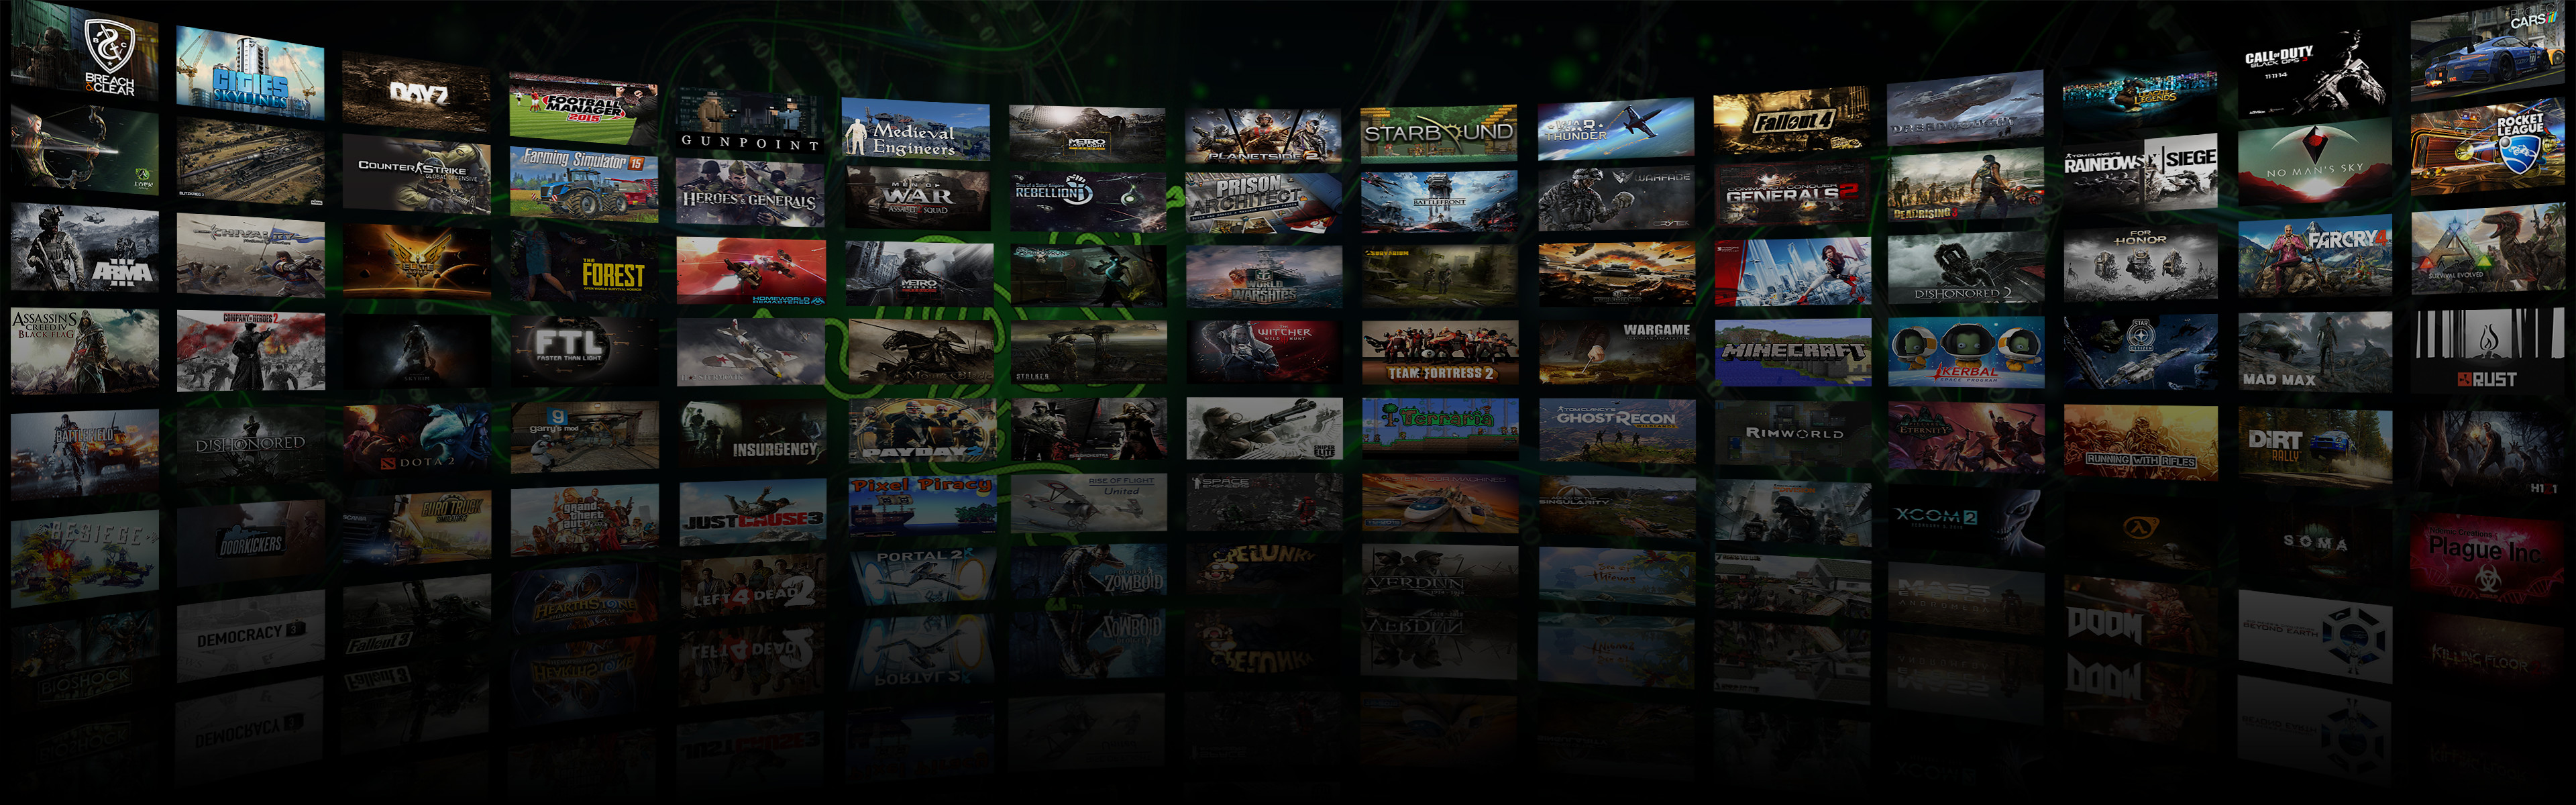 … Dual Monitor Game Montage Wallpaper 3 by DarkXess